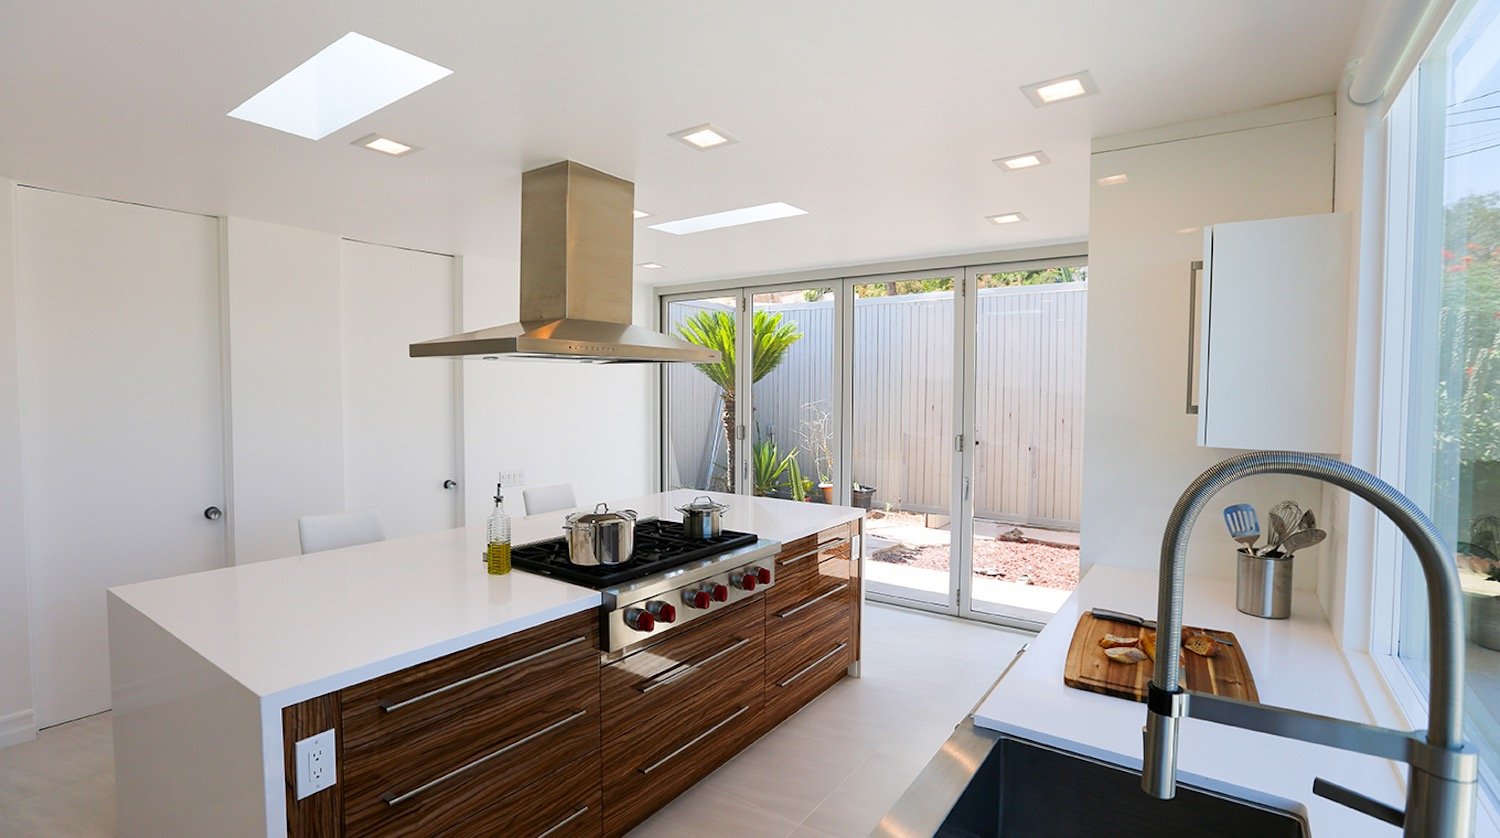 Modern Metal Bifold Doors For White Minimalist Contemporary Kitchen Interior (View 16 of 24)